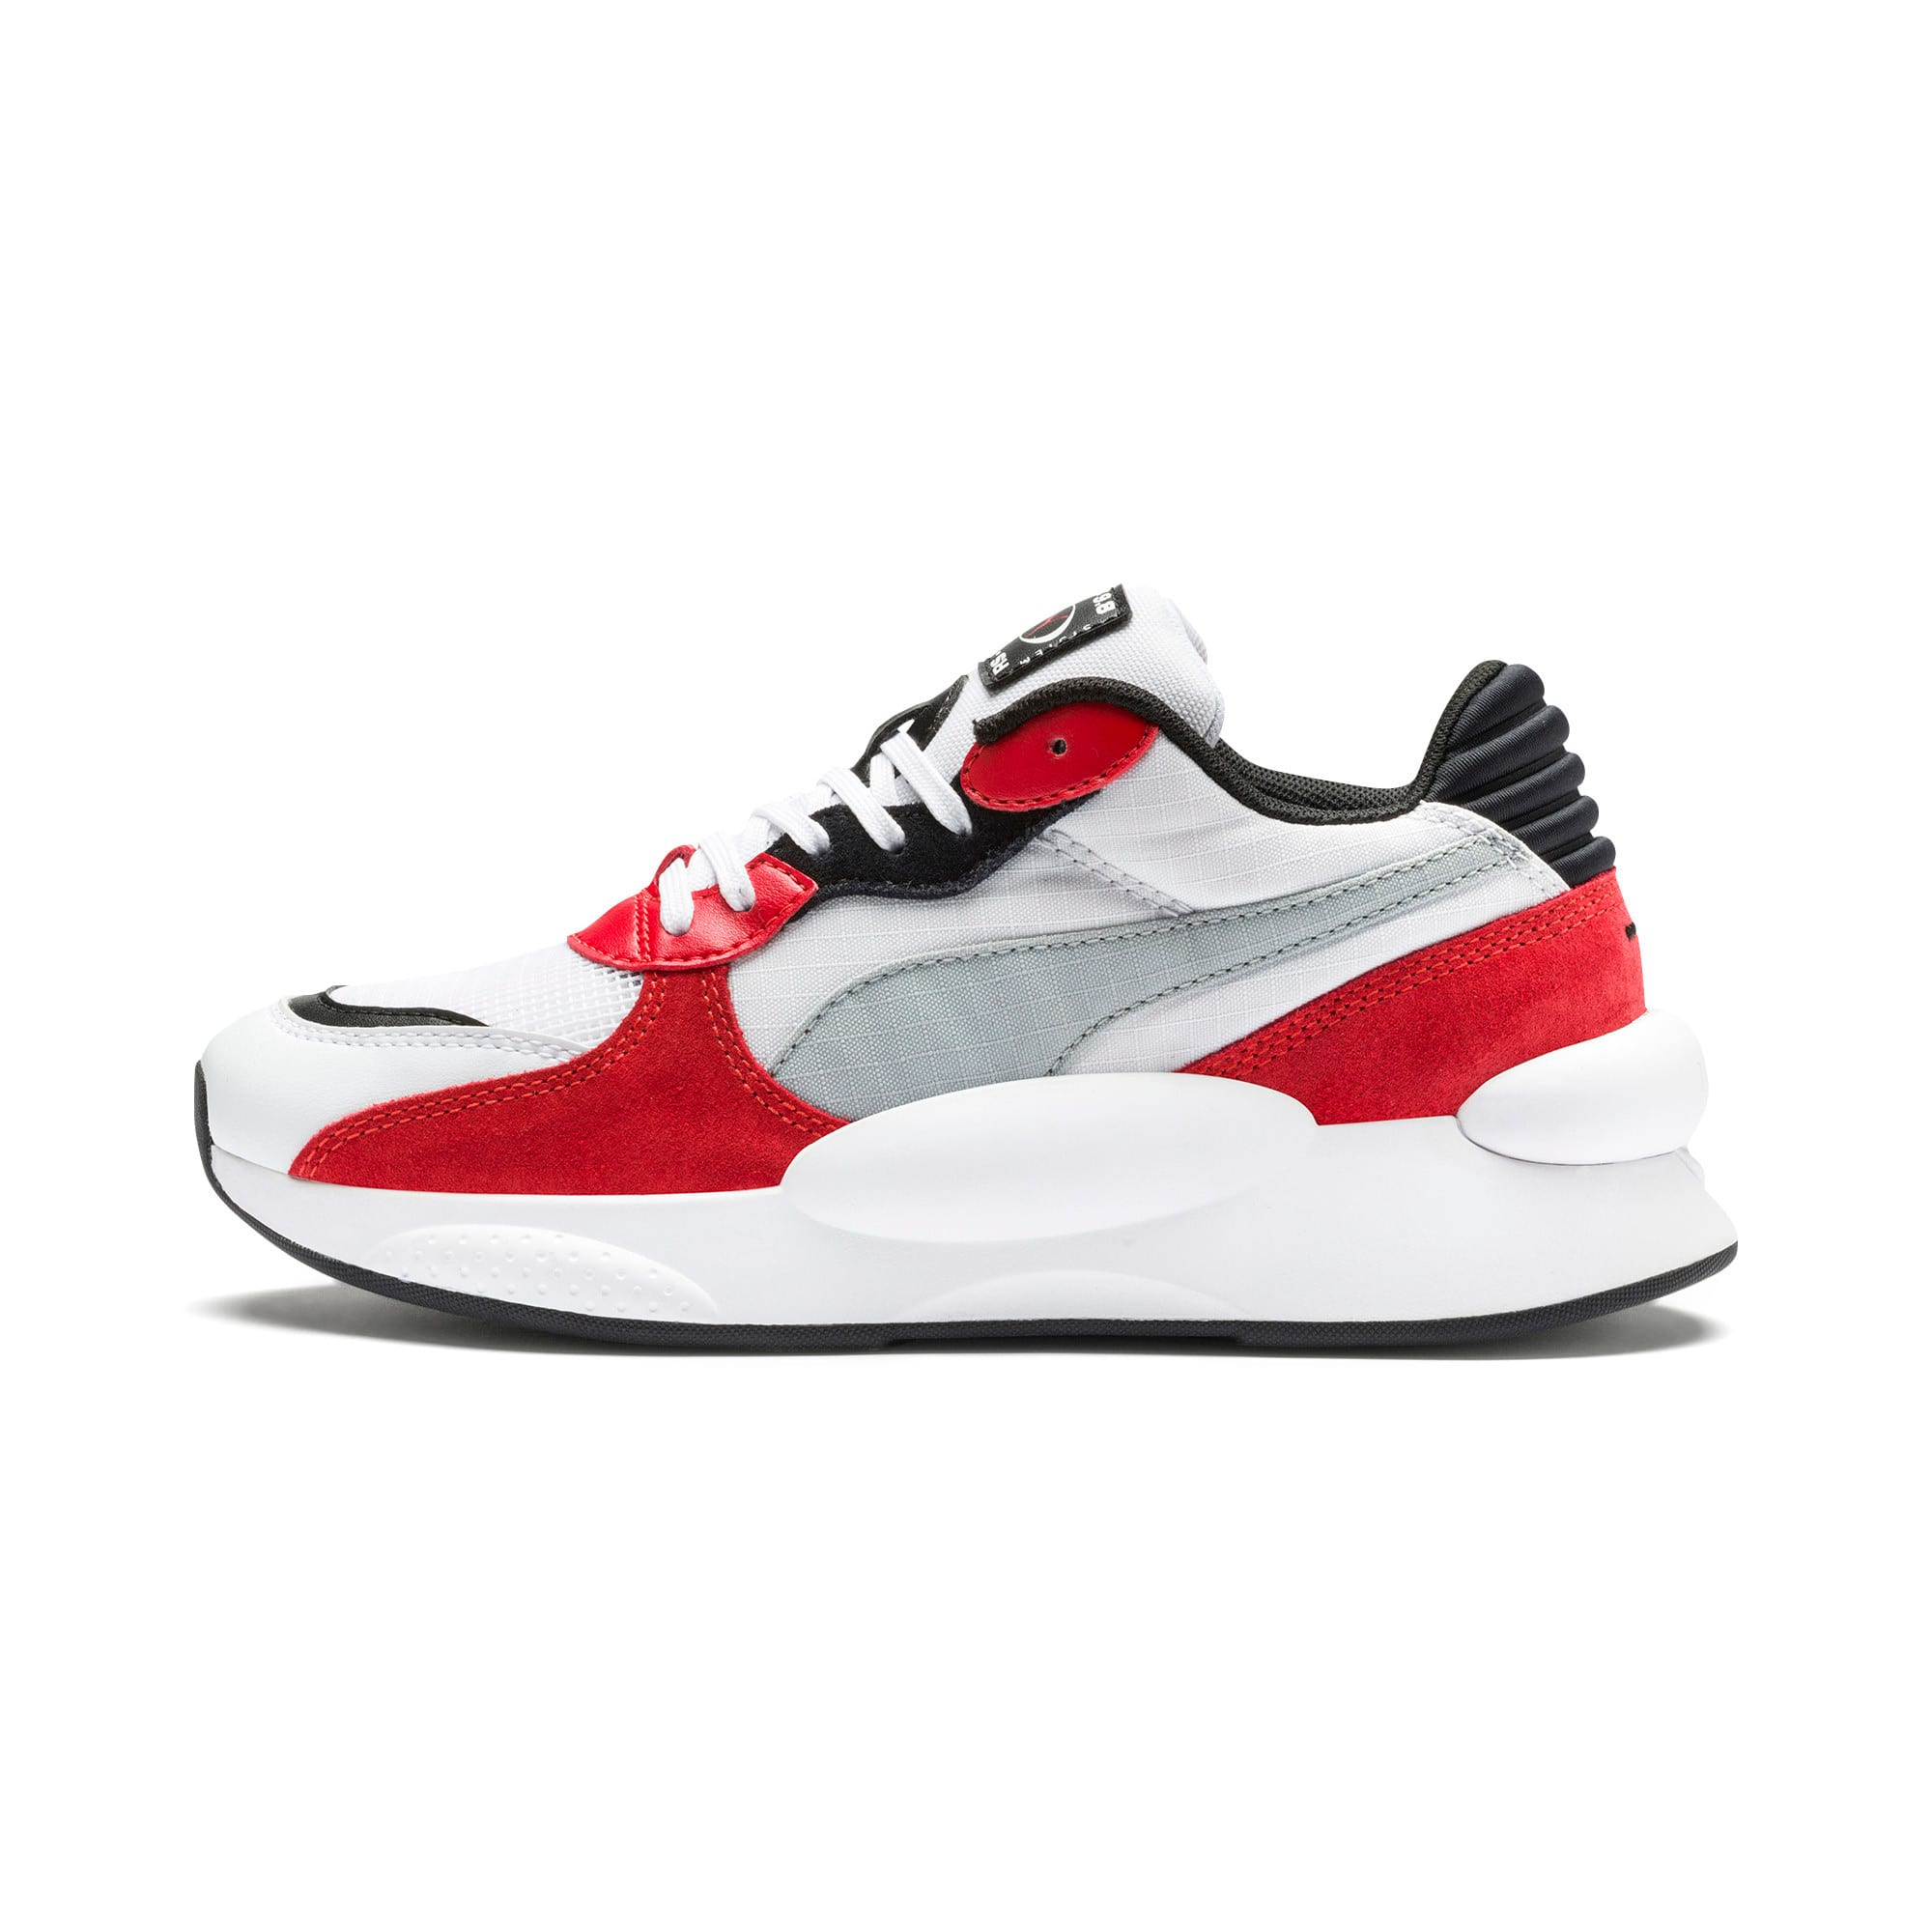 Thumbnail 1 of RS 9.8 Space Youth Trainers, Puma White-High Risk Red, medium